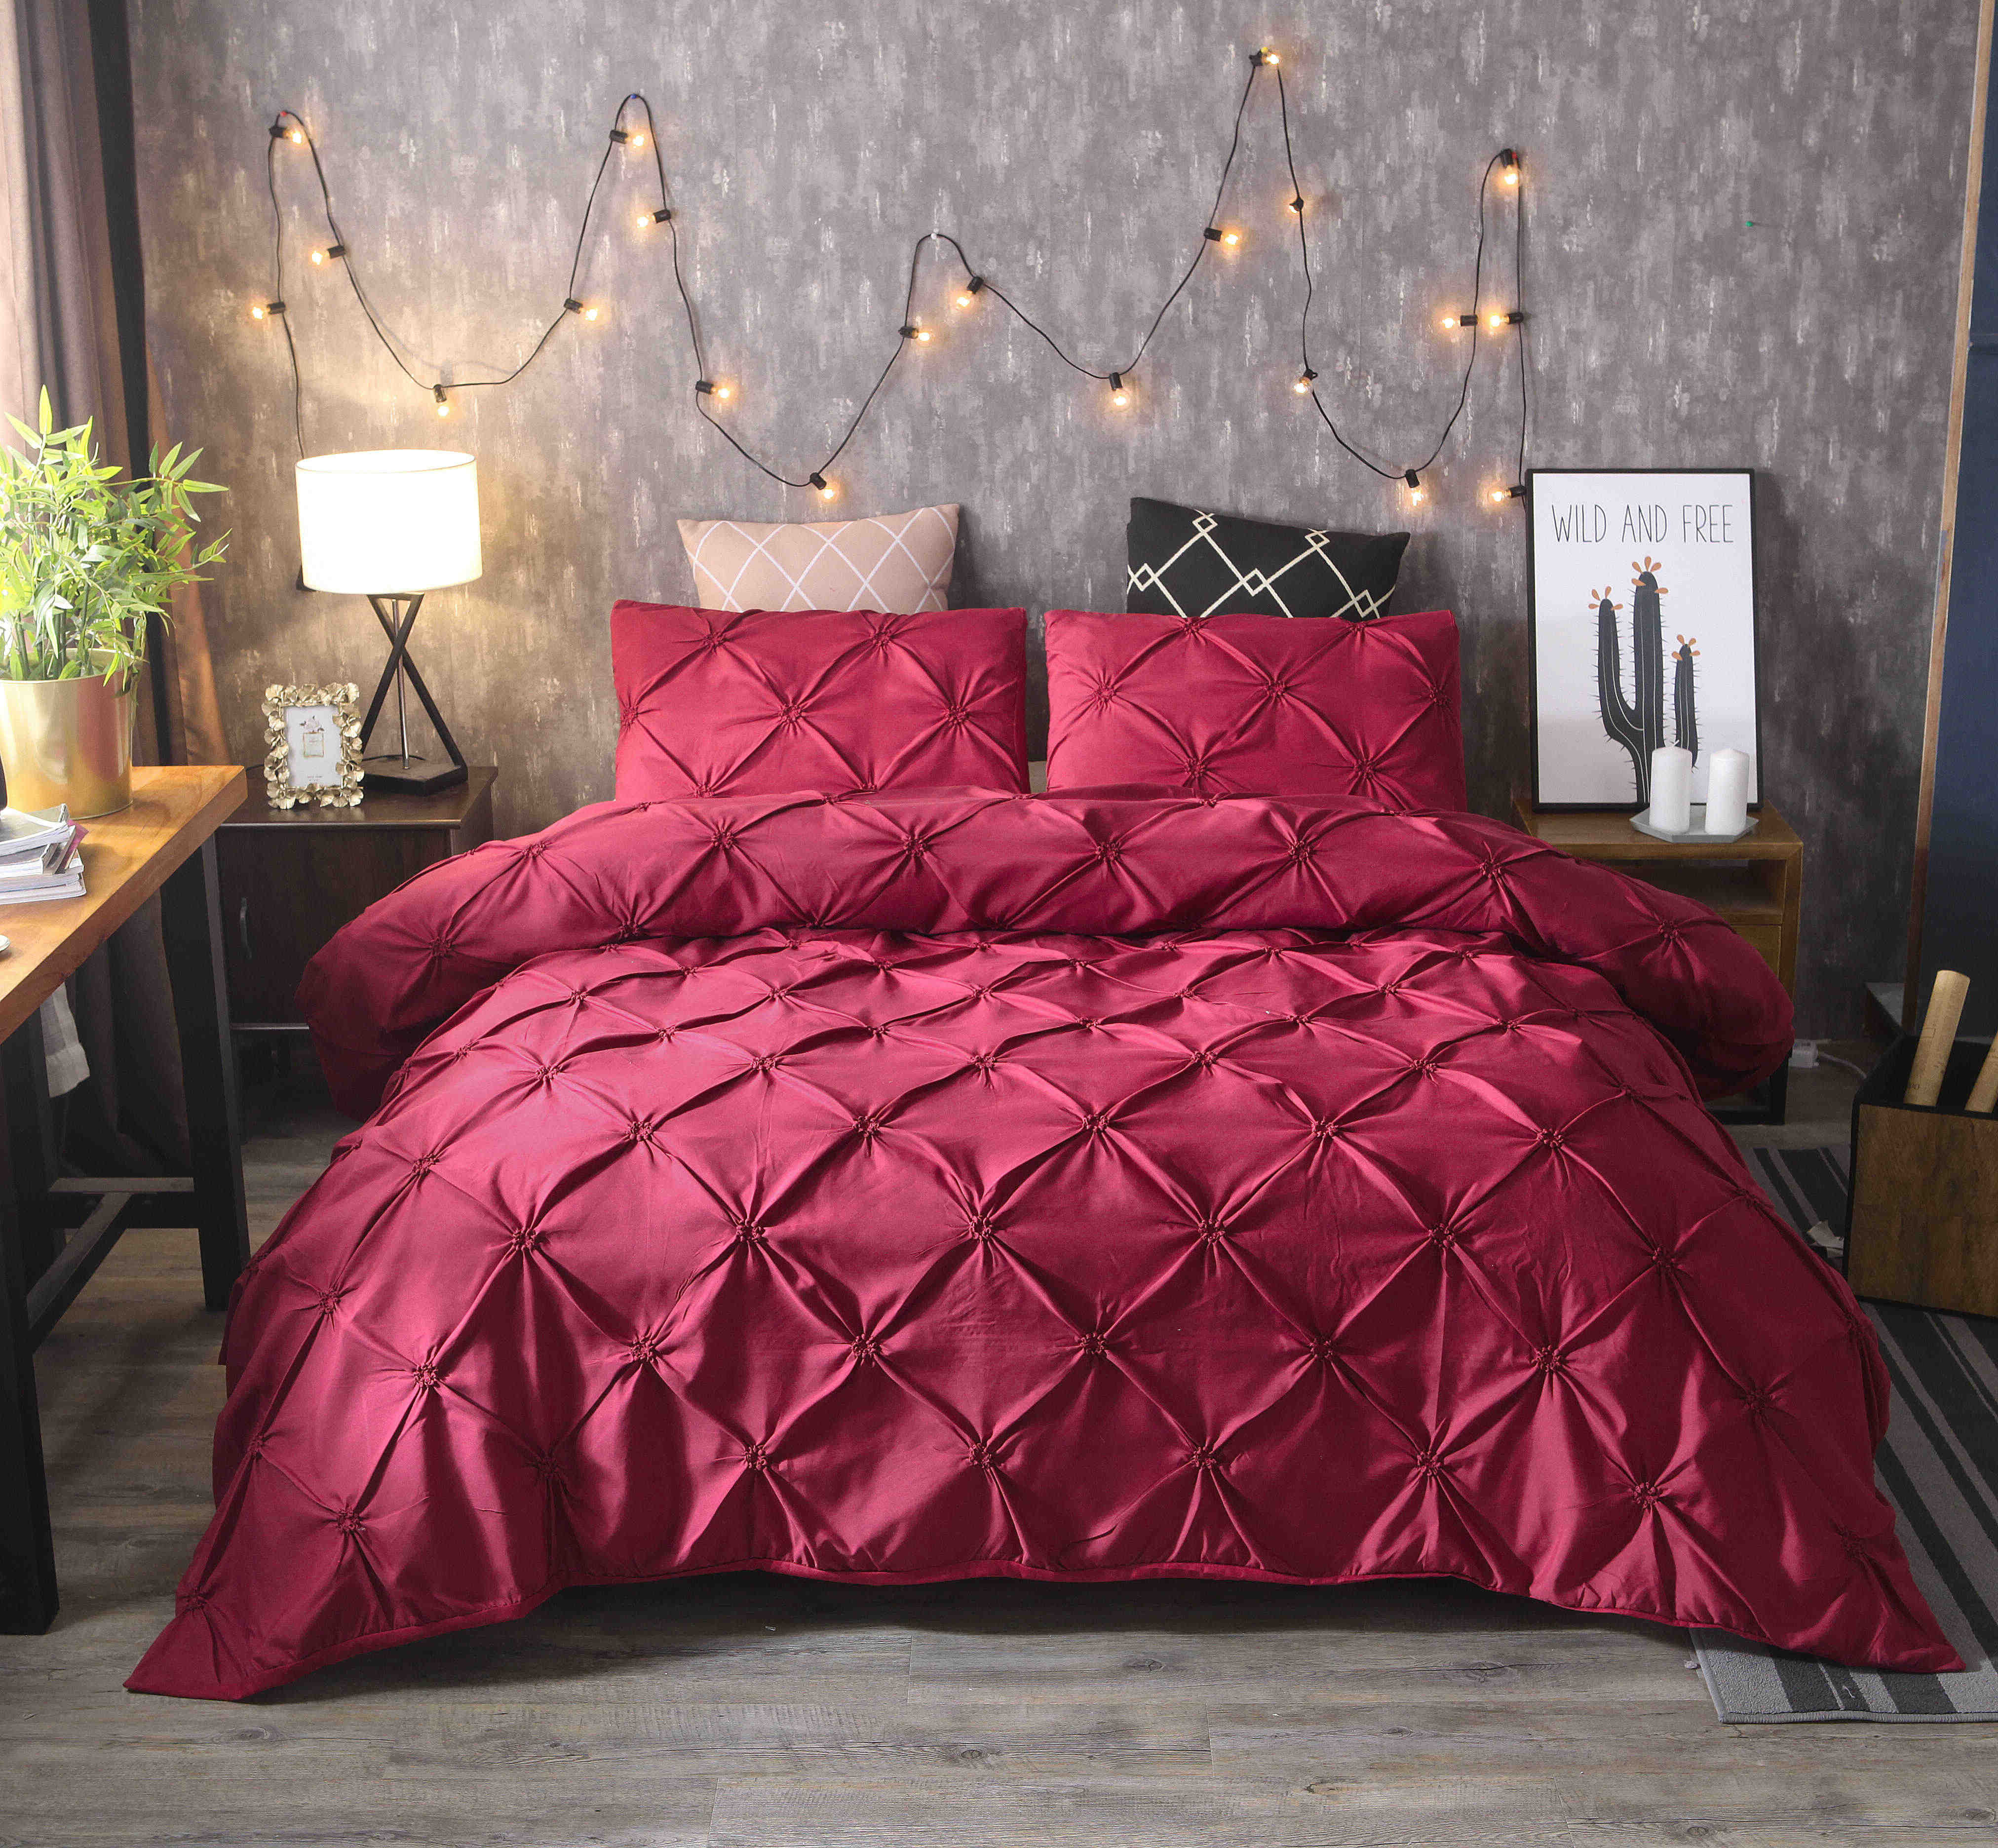 Pinch Pleat Bedding Set Cotton Luxury Super Soft Duvet And Pillowcases Comforter Bedding Sets Queen King Size Bed Cover Set Bedding Sets Aliexpress